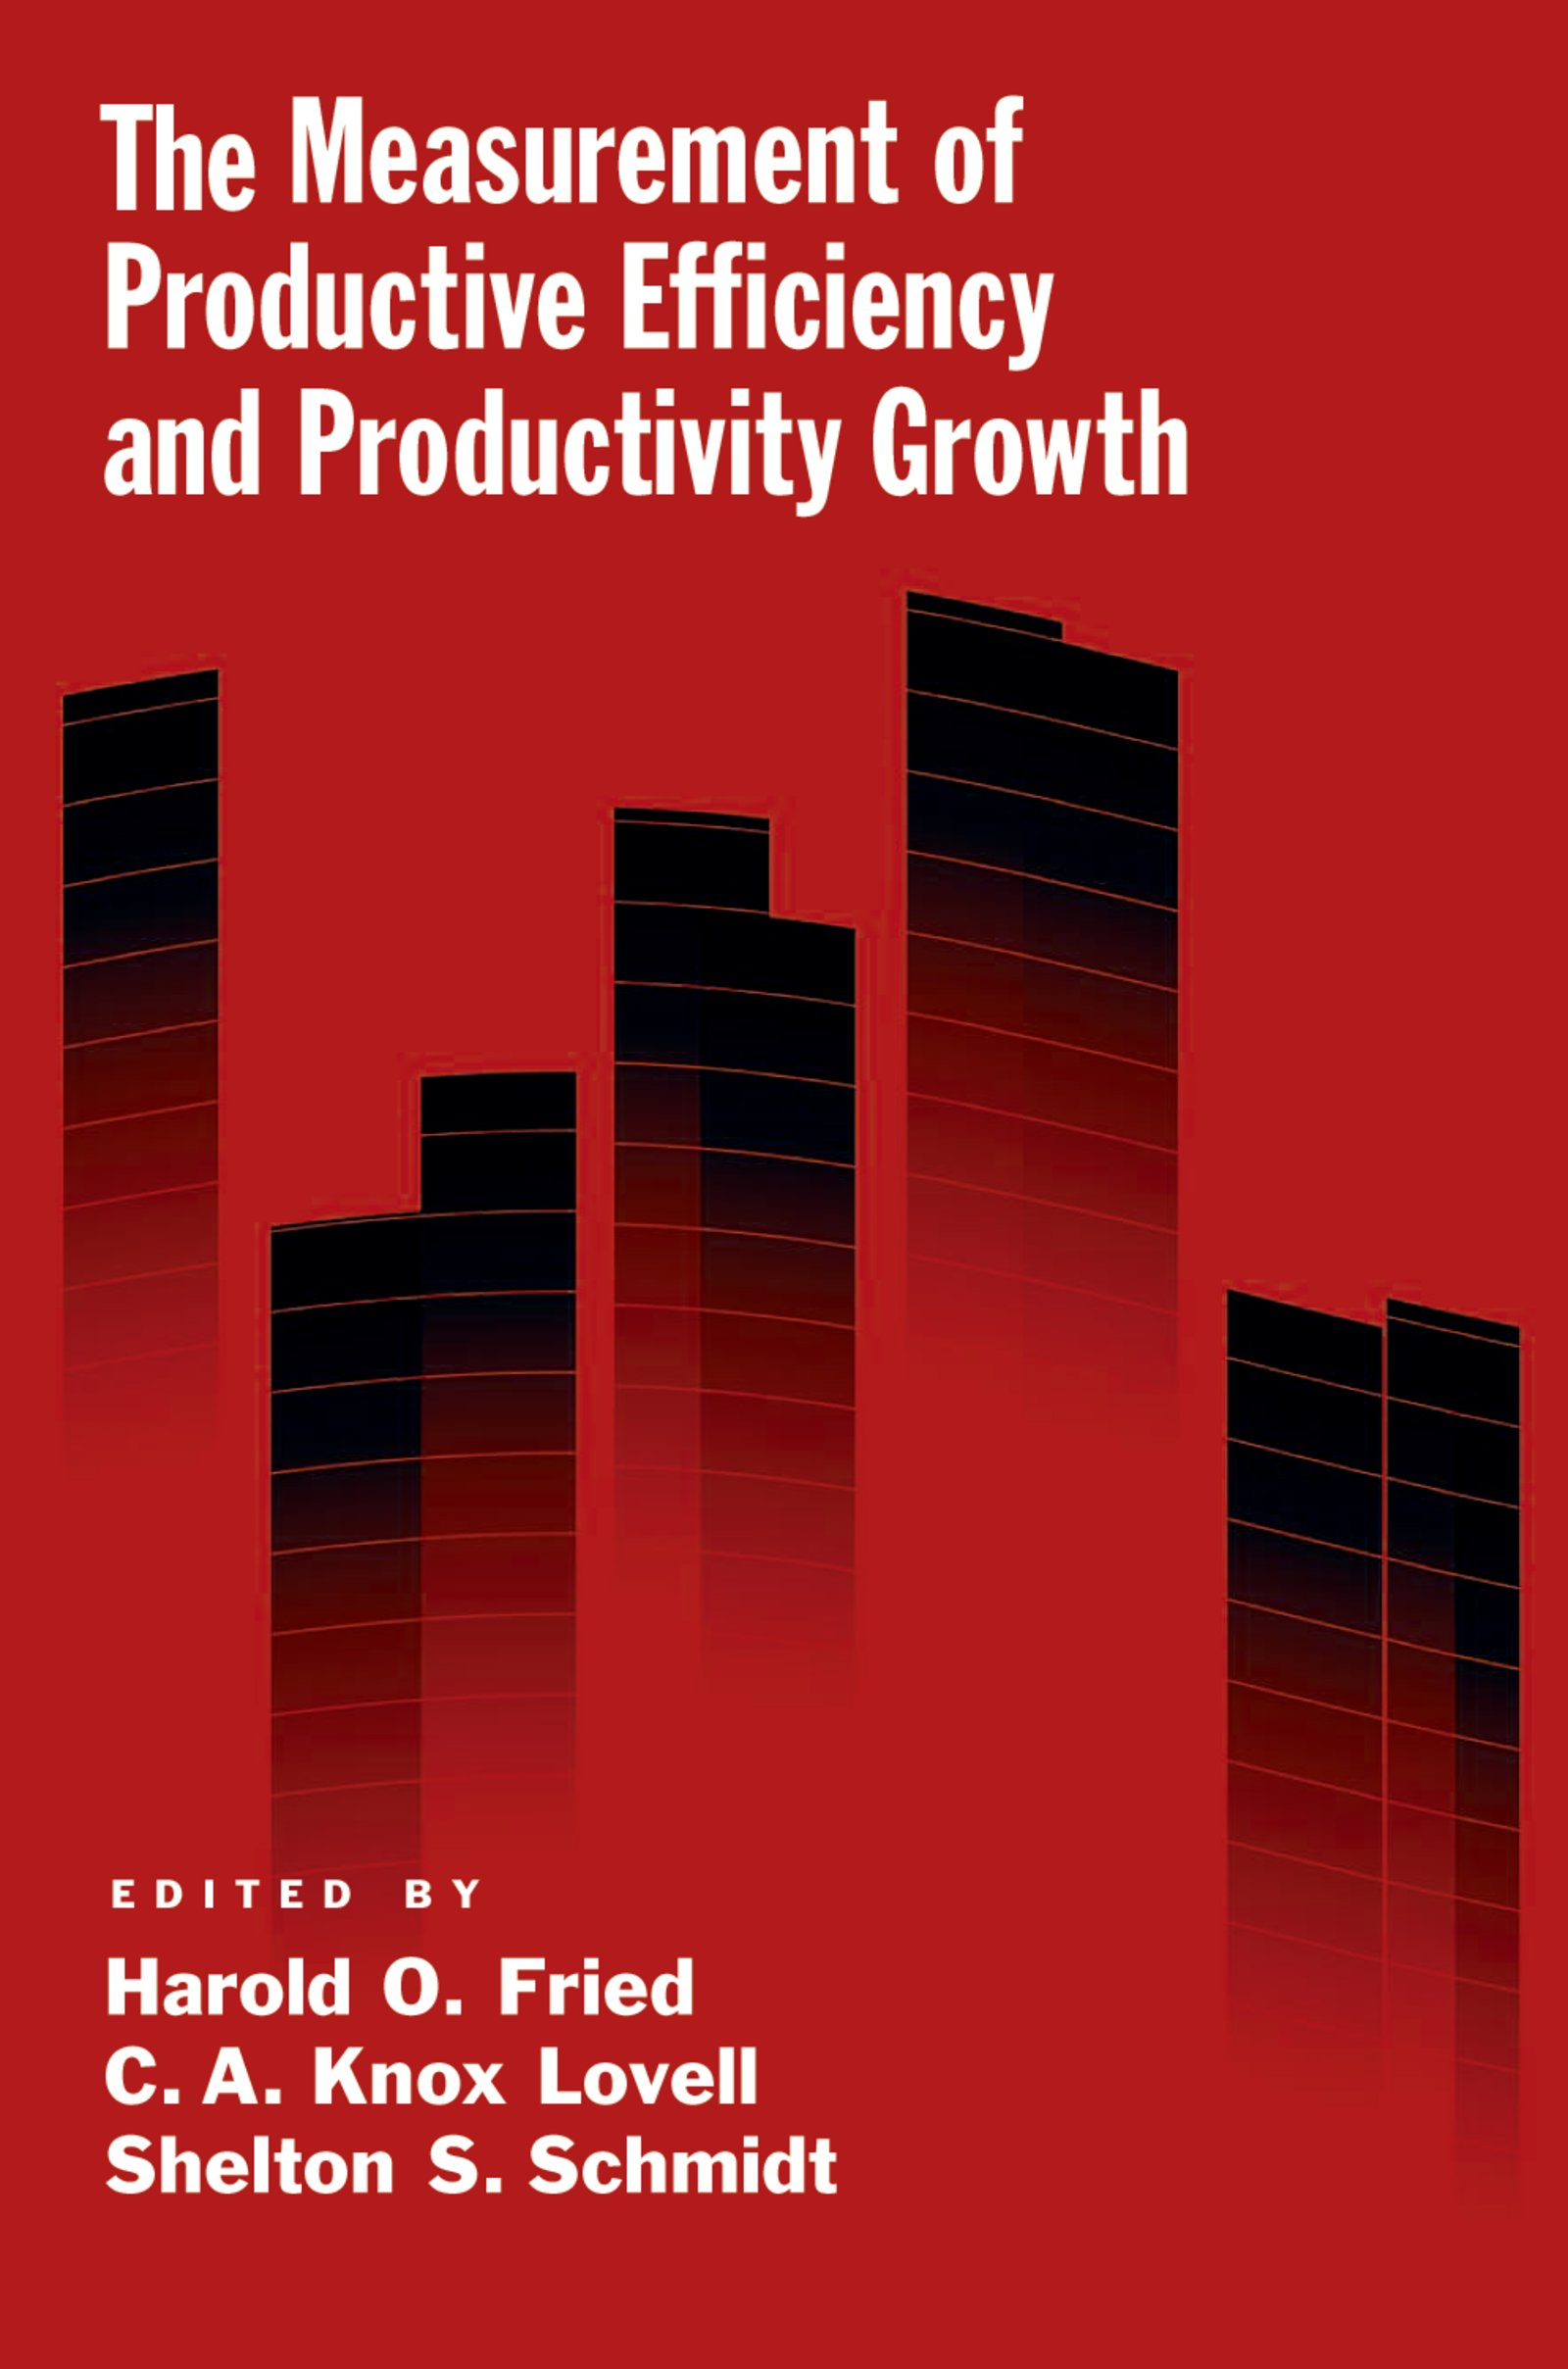 Download Ebook The Measurement of Productive Efficiency and Productivity Growth by Harold O. Fried Pdf